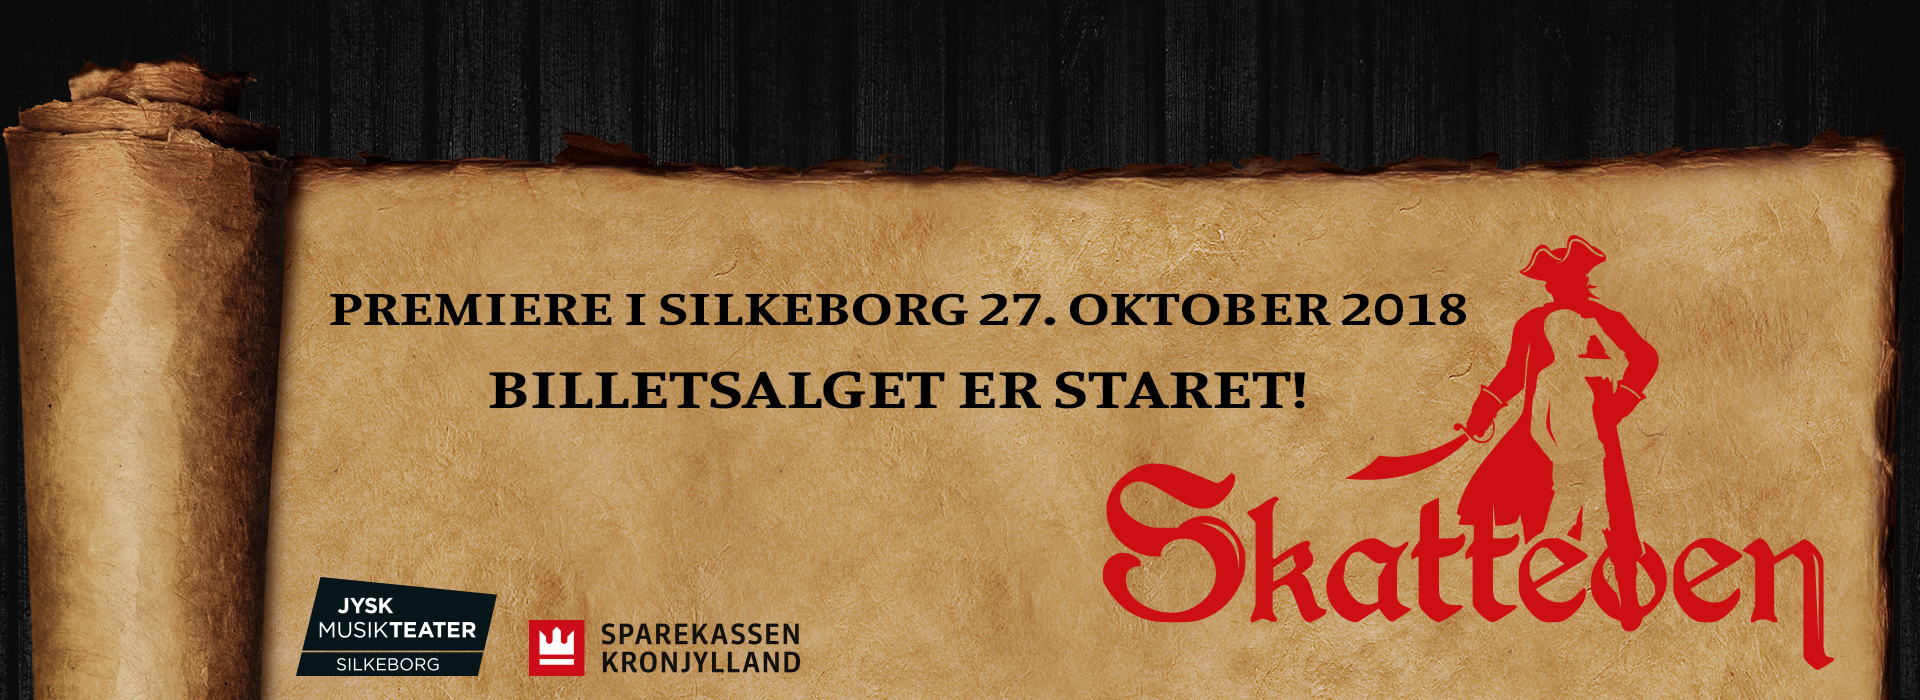 Website_Banner_Skatteøen